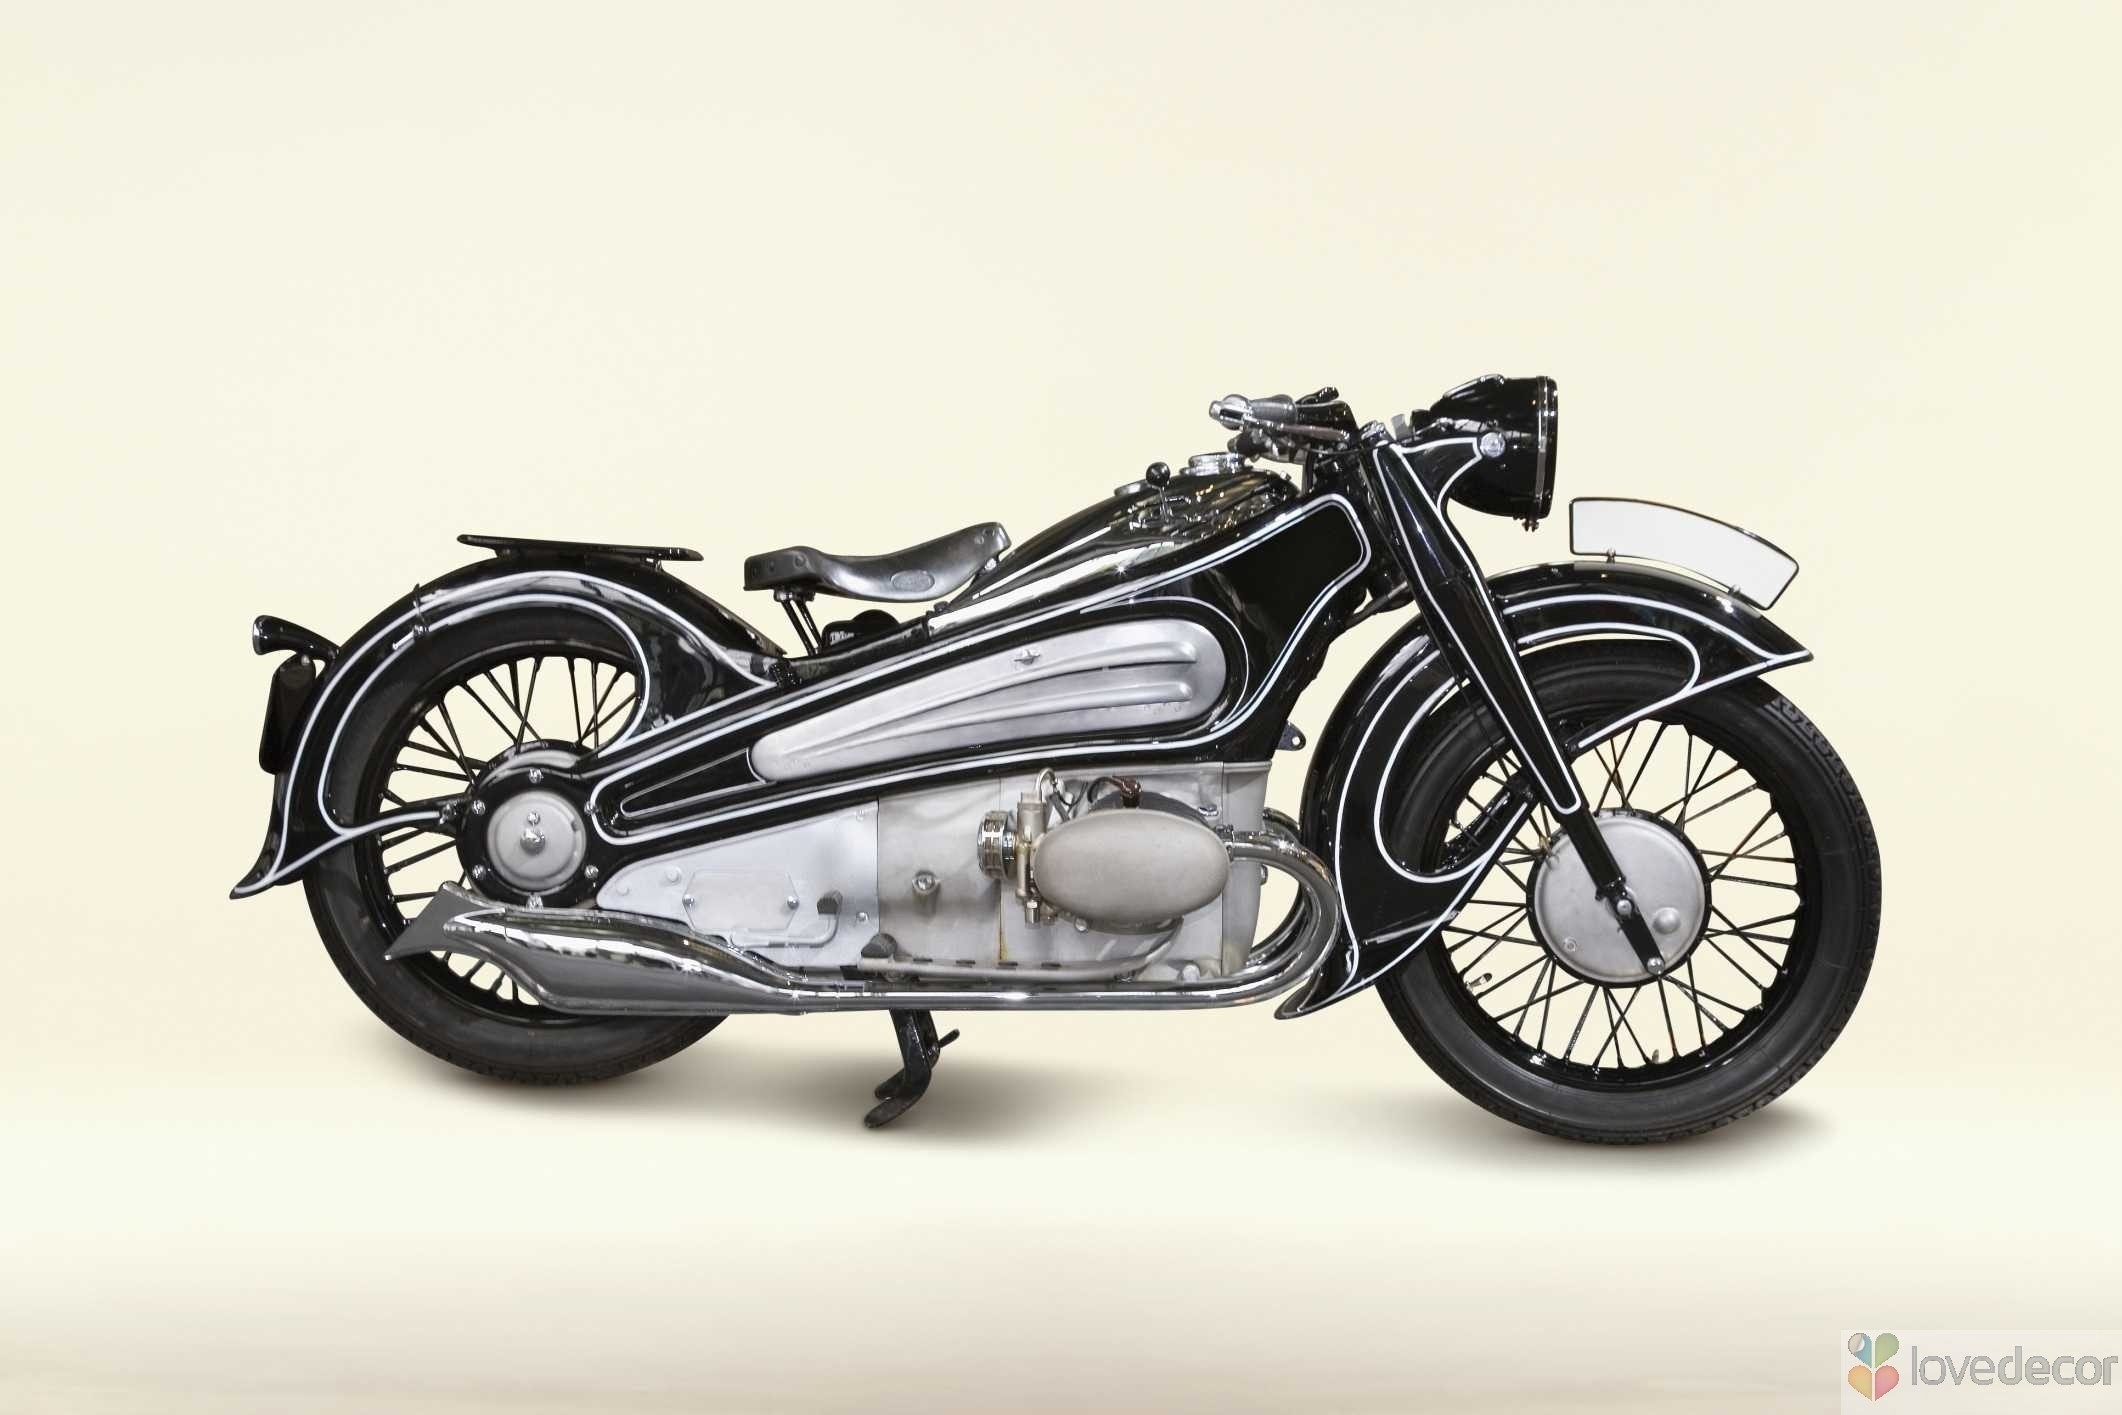 Res: 2122x1415, Back to 79+ Vintage Motorcycle Wallpapers